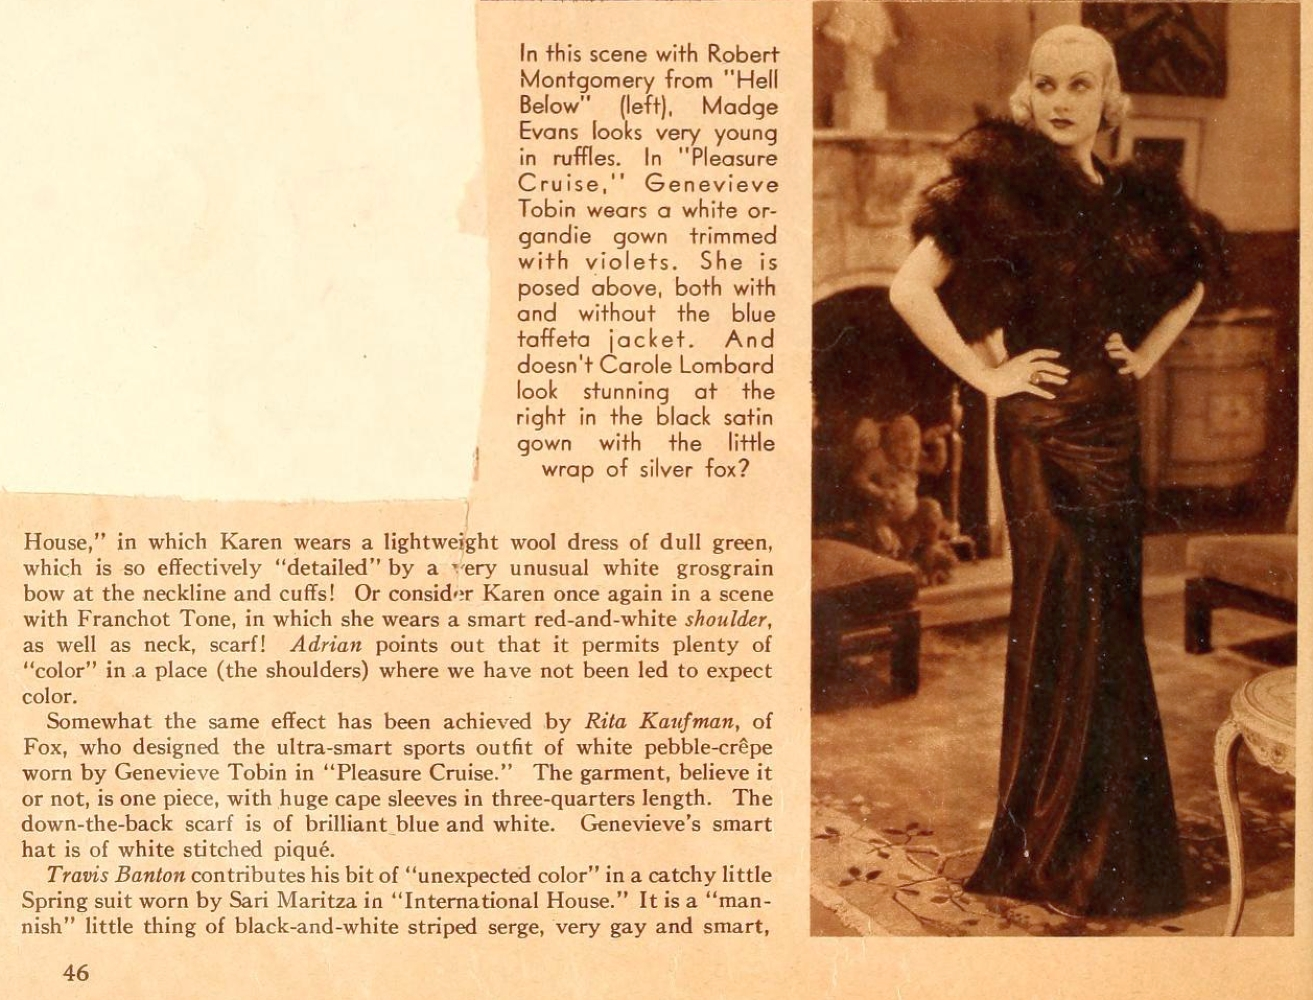 carole lombard motion picture june 1933 fashion tips 02a